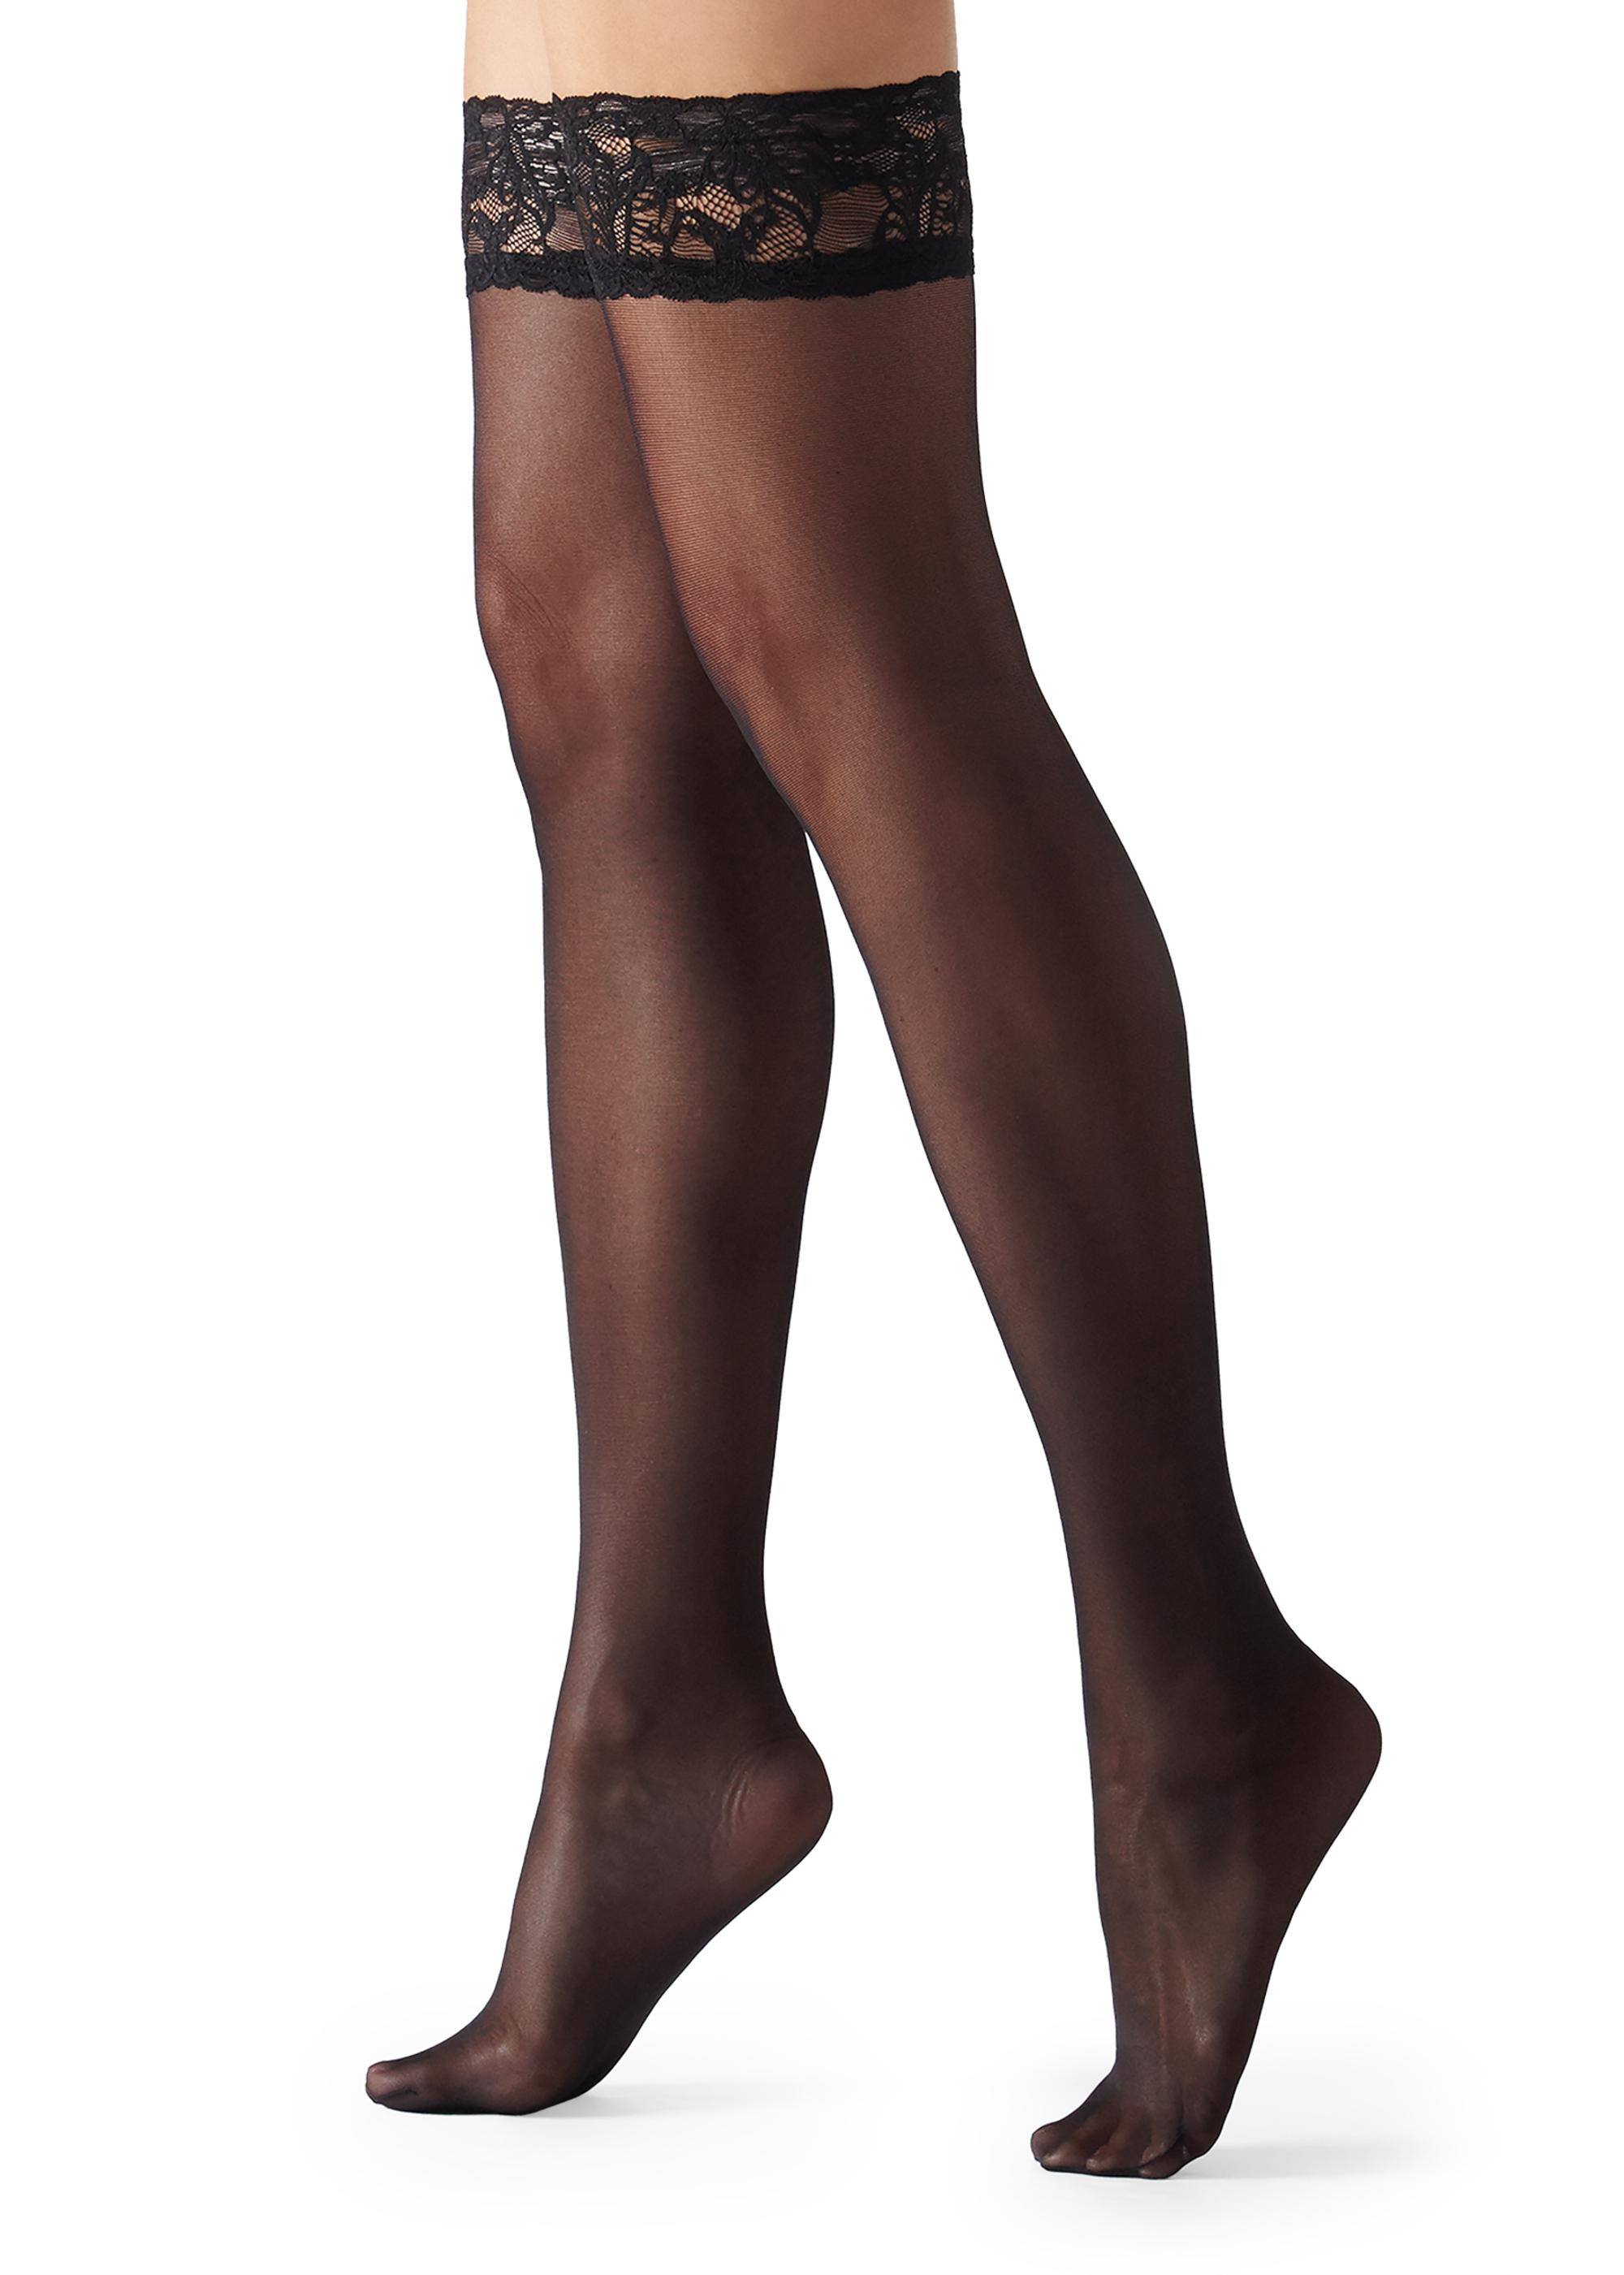 fb3e9a6595738 40 Denier Sheer Thigh-Highs - Calzedonia